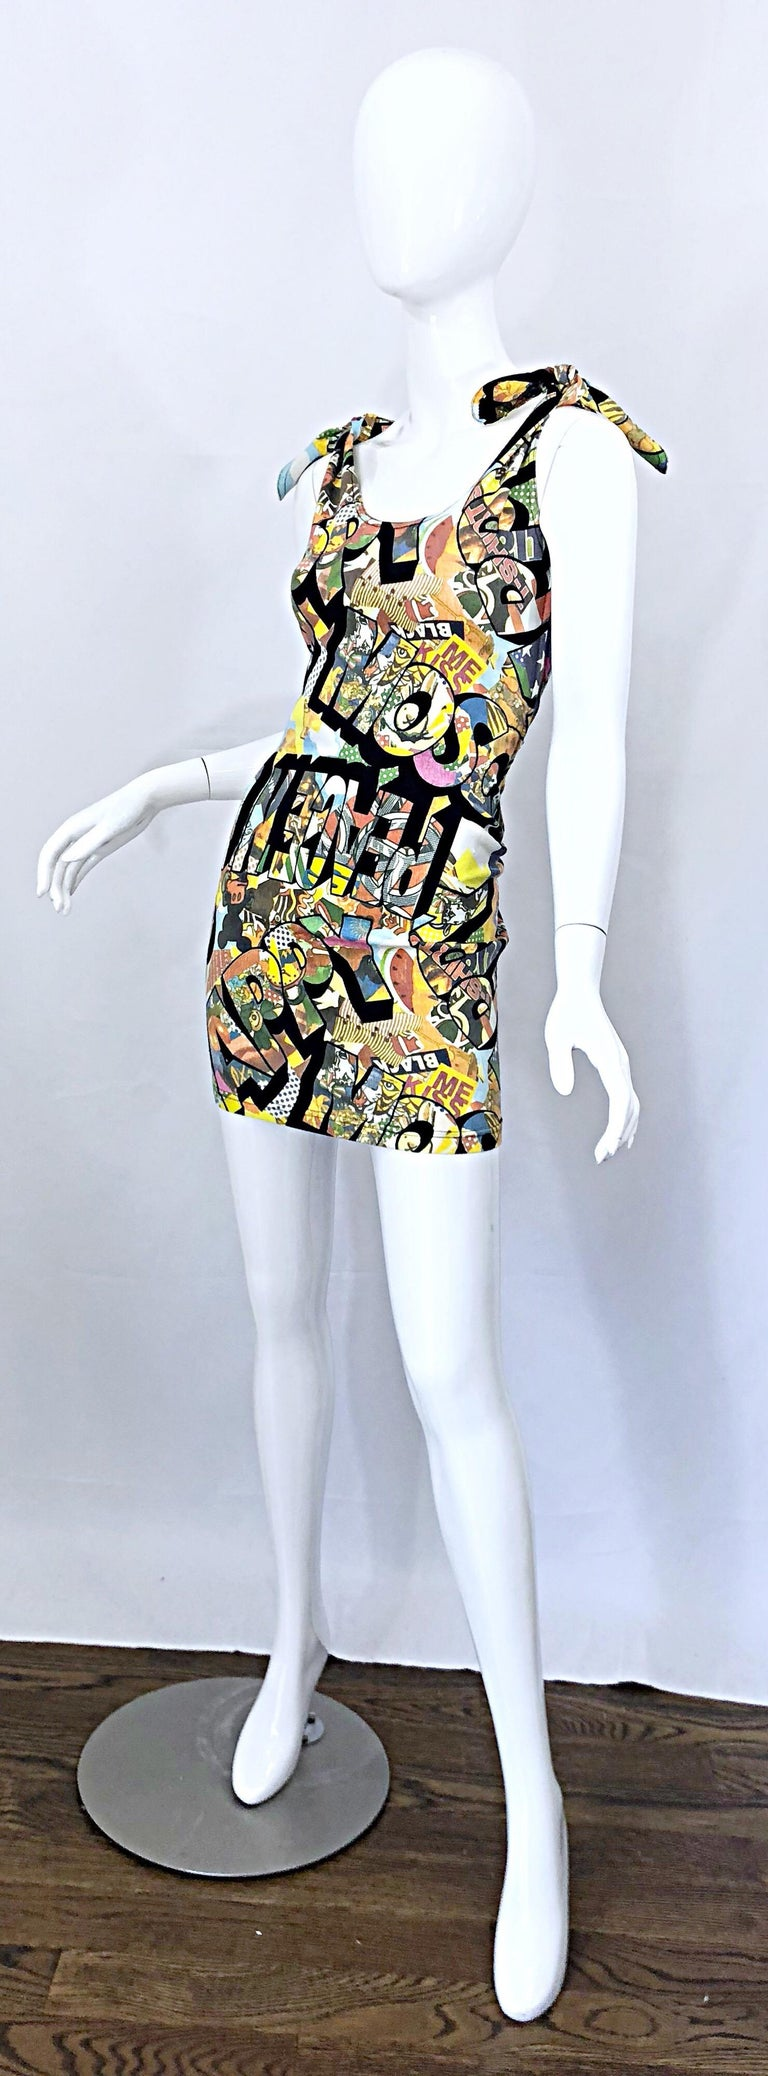 Women's Vintage Moschino 1990s Mickey Mouse Disney Iconic Novelty Print 90s Mini Dress For Sale